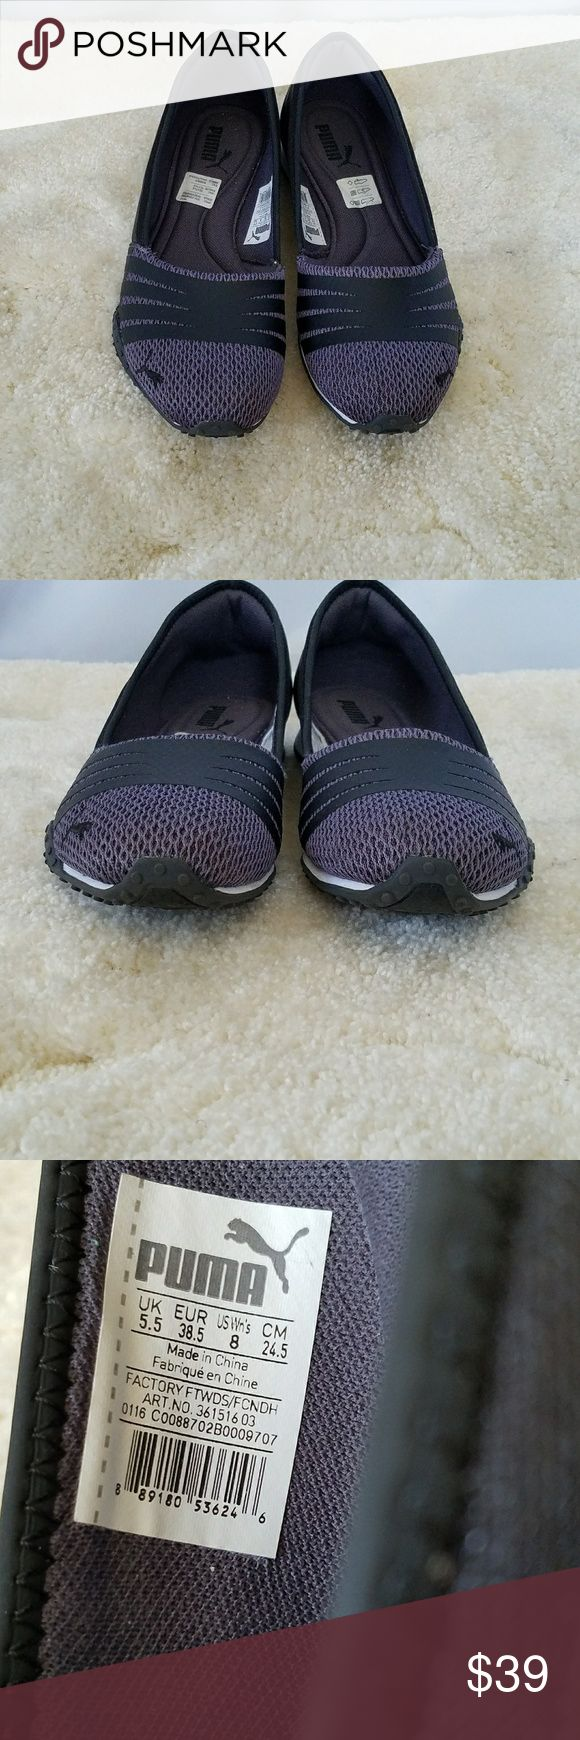 PUMA BLACK & GRAY ATHLETIC BALLET FLATS 8 NWOT PUMA BLACK & GRAY ATHLETIC BALLET FLATS 8. LIKE NEW. On trend for athleisure and beyond! Puma Shoes Flats & Loafers